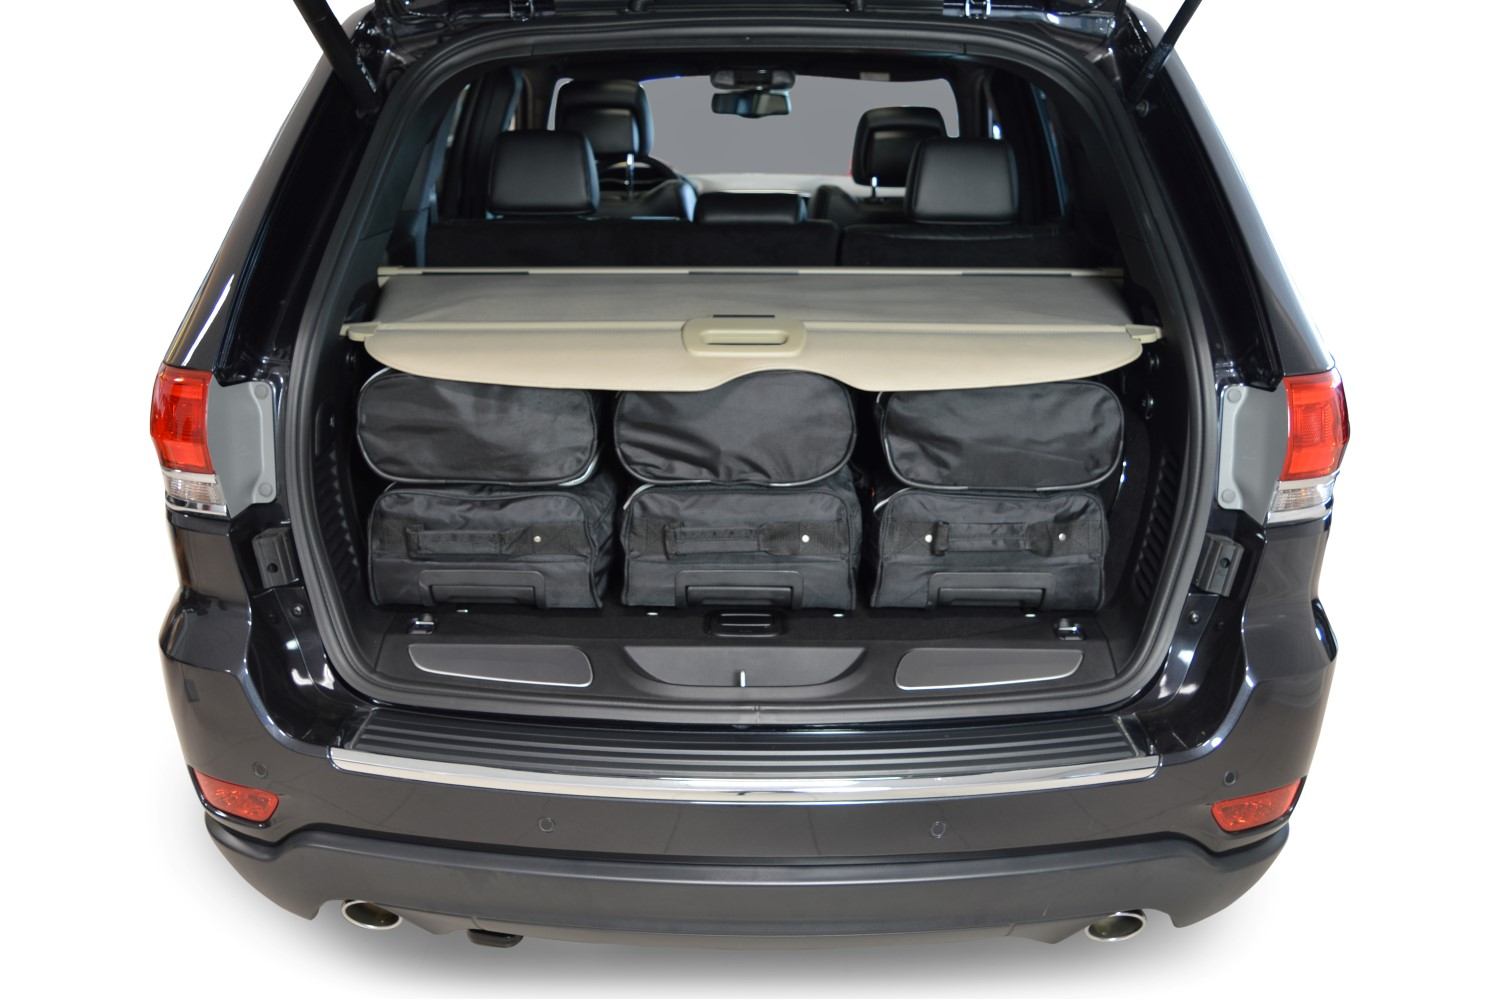 grand cherokee jeep grand cherokee iv wk2 2010 heute car bags reisetaschen. Black Bedroom Furniture Sets. Home Design Ideas